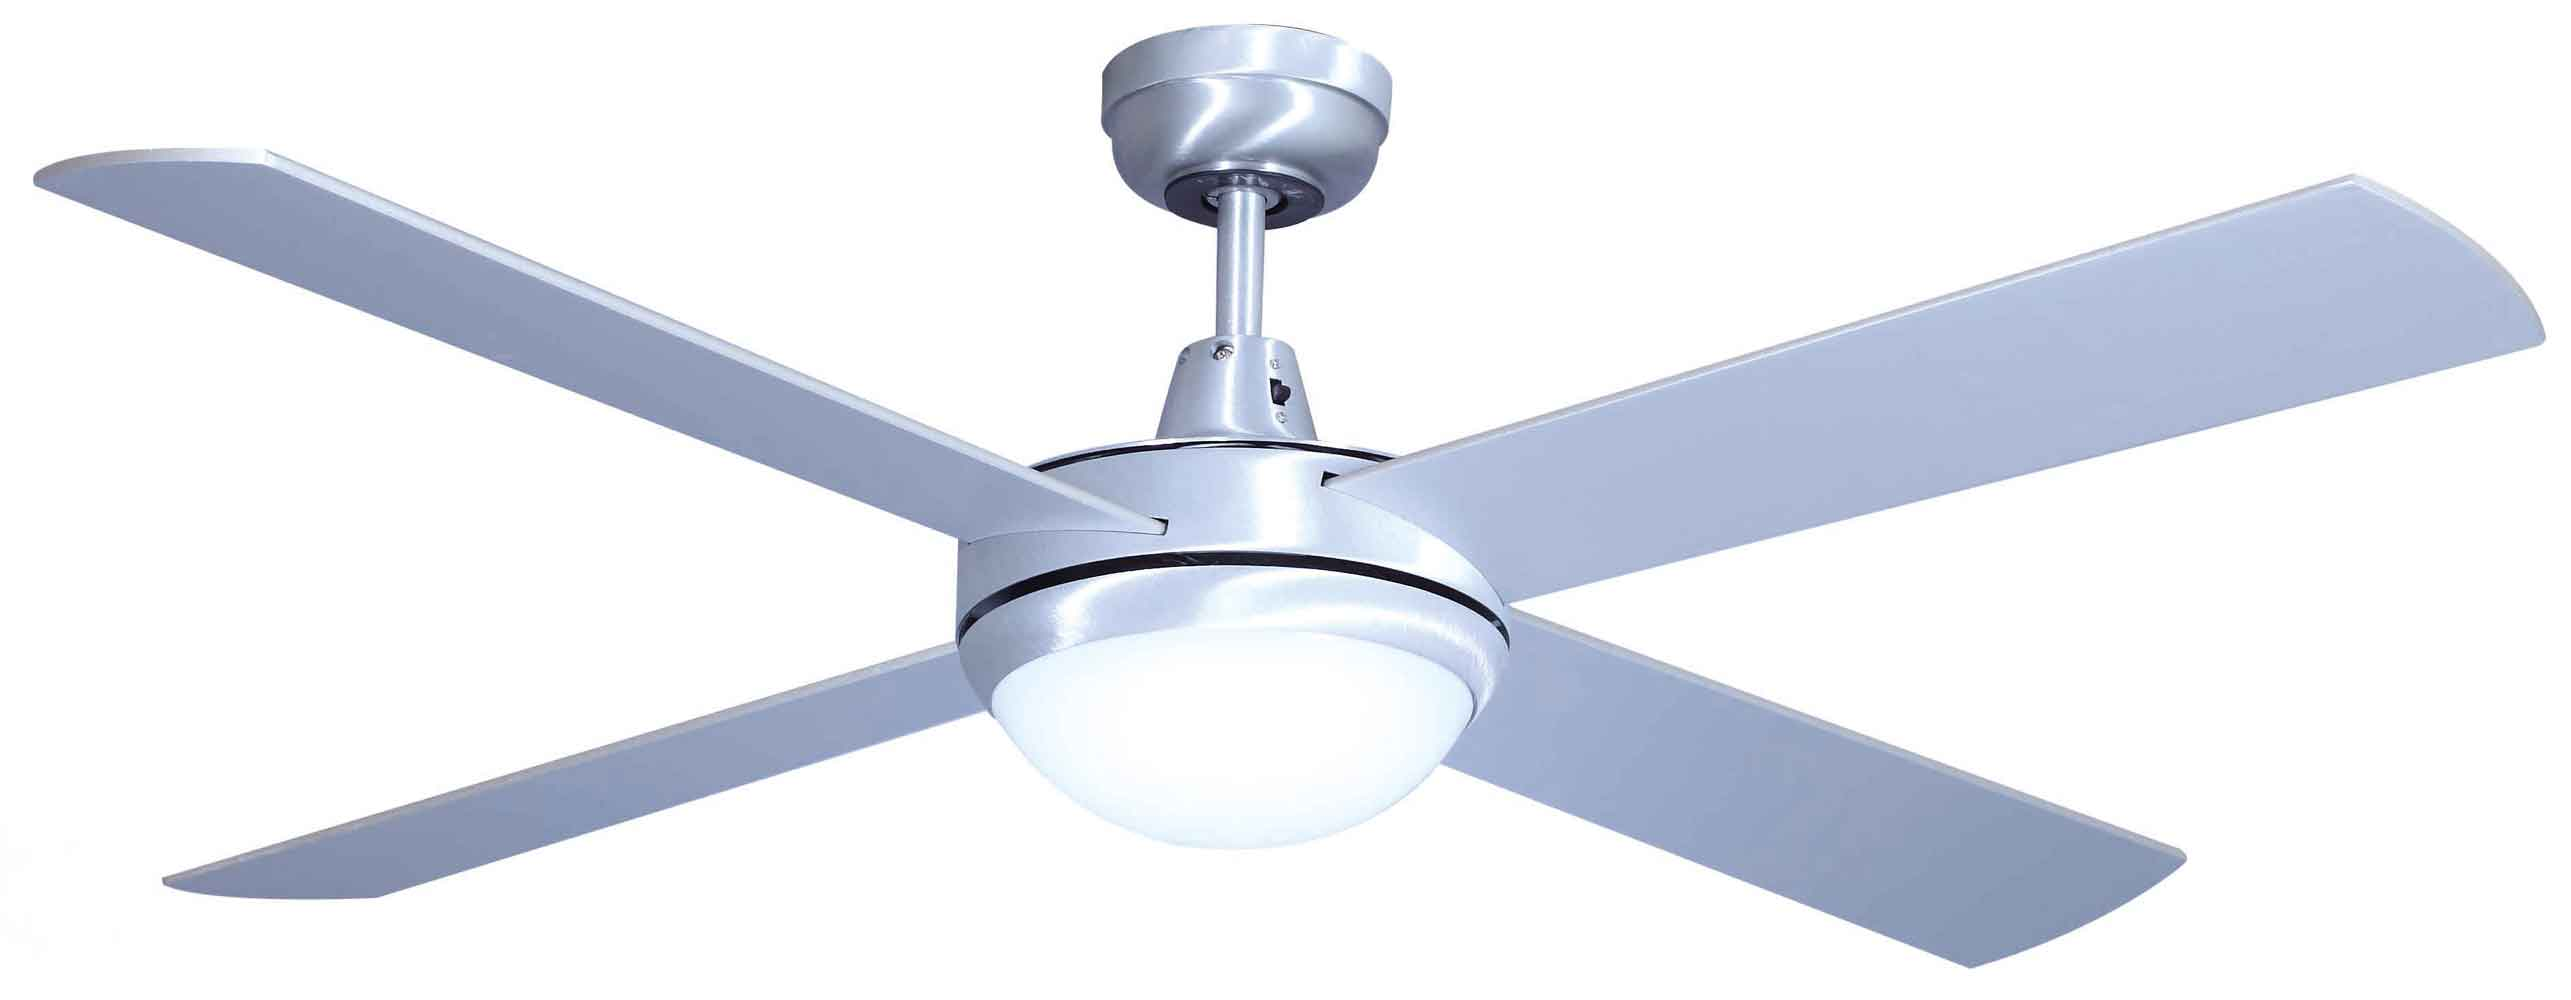 Grange 1300 ceiling fan with led light d lighting grange 1300 ceiling fan with led light aloadofball Gallery